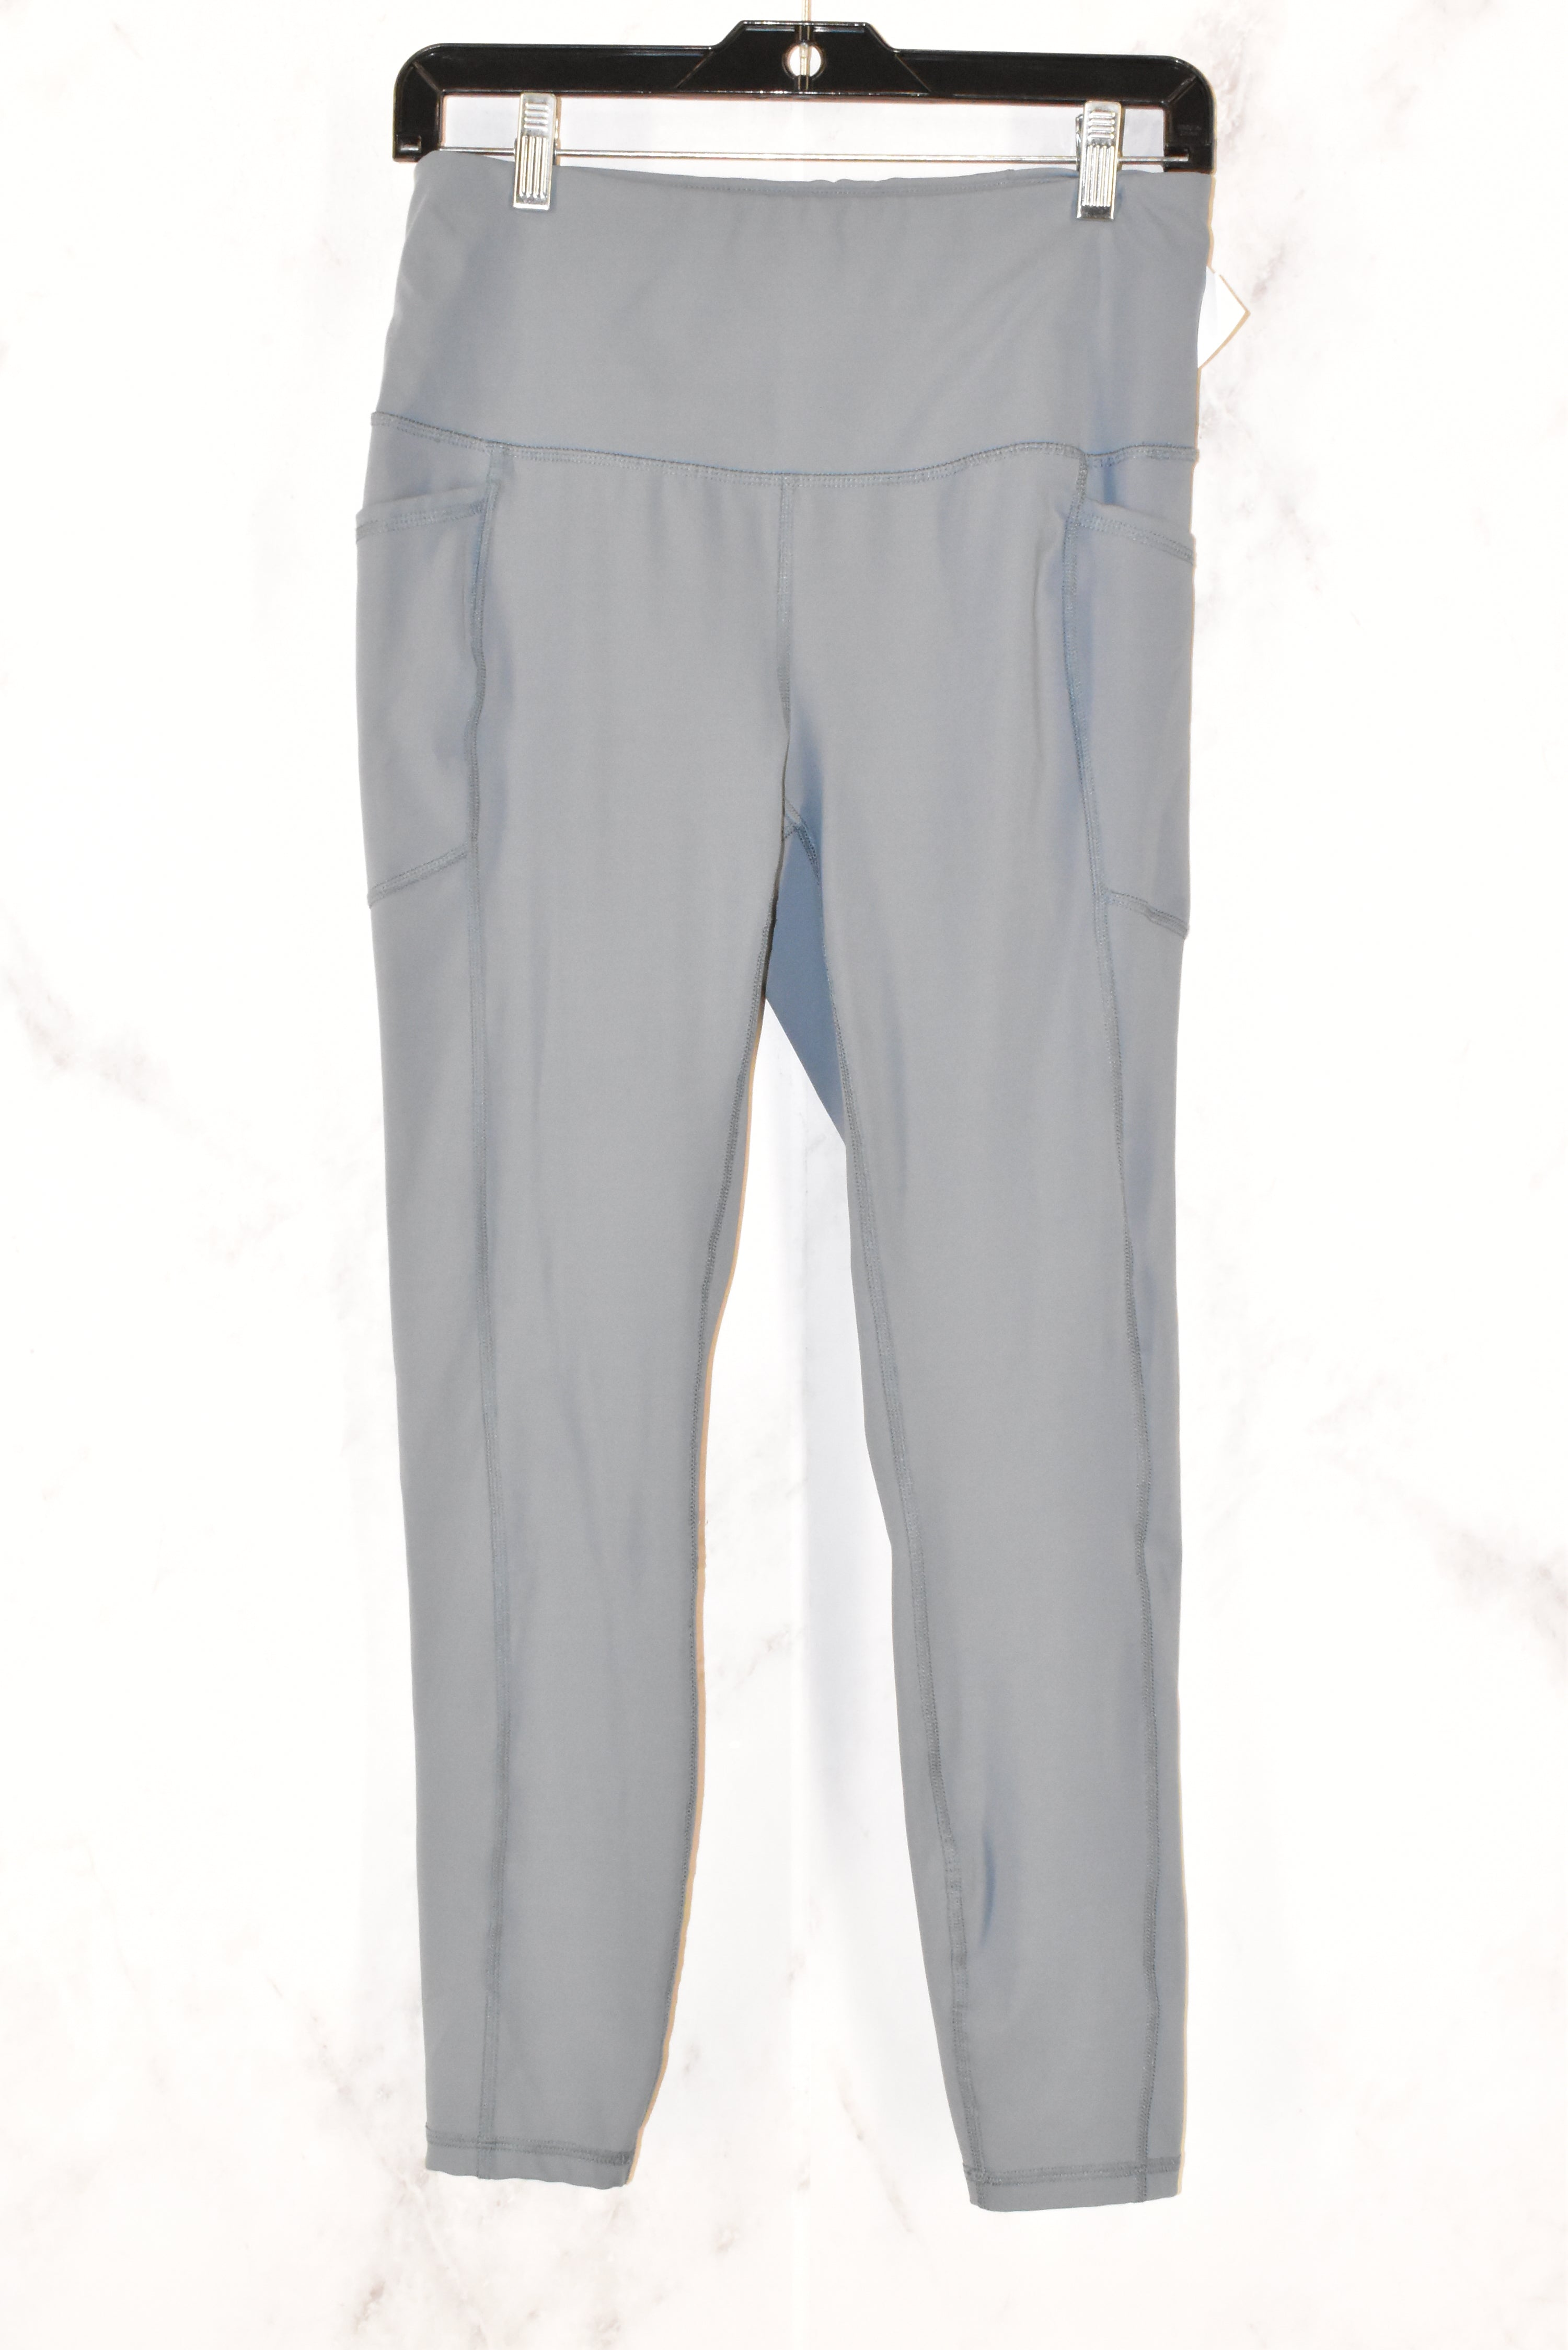 Primary Photo - BRAND: RBX <BR>STYLE: ATHLETIC PANTS <BR>COLOR: GREY <BR>SIZE: L <BR>SKU: 186-186213-3551